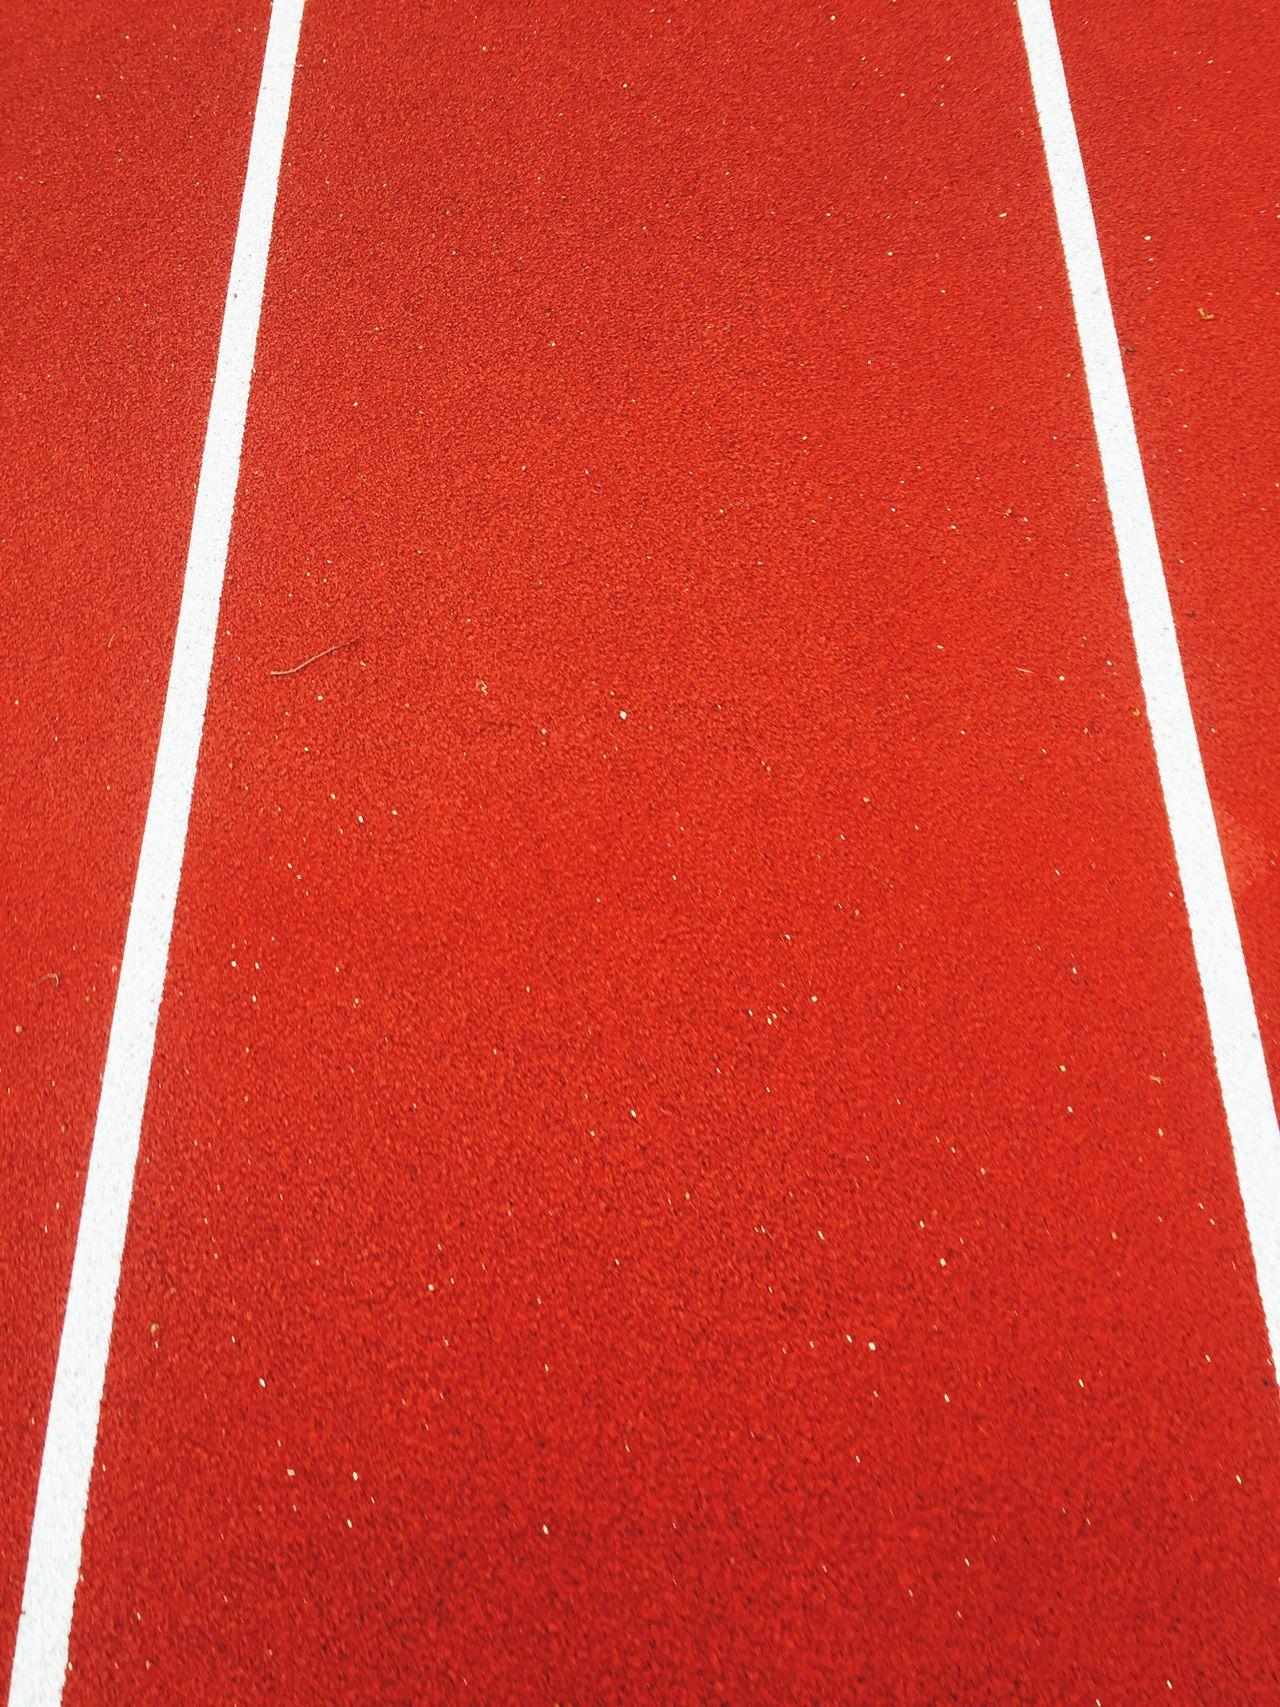 Running Track Competition Close-up Red Sport Sports Track Outdoors No People Track And Field Competitive Sport Day Backgrounds Track And Field Stadium Stadium Starting Line